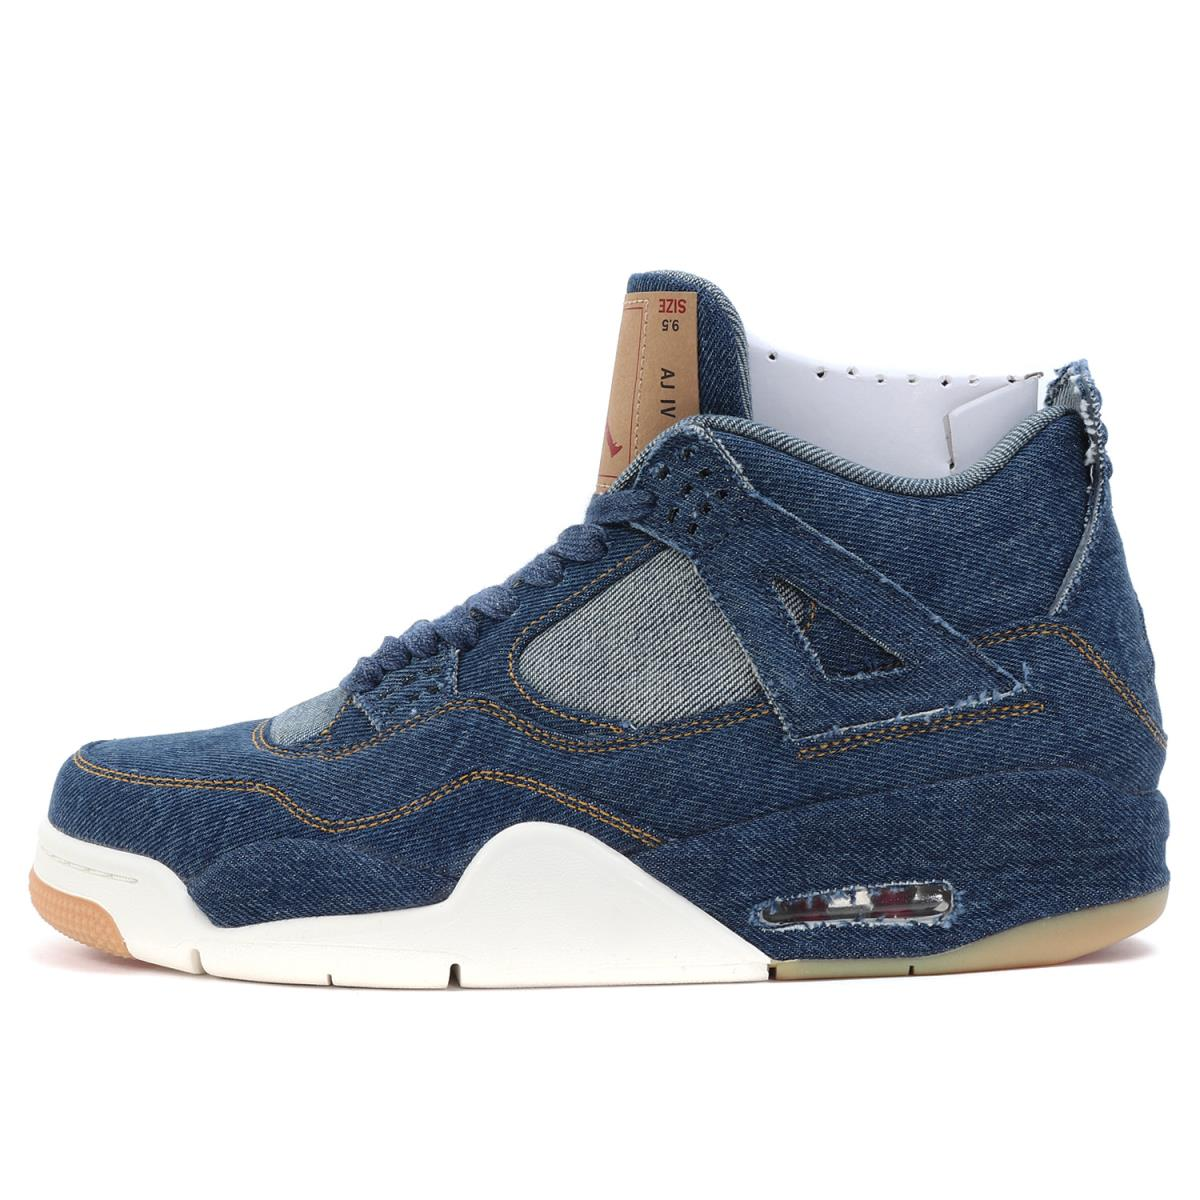 new concept e04a7 757b3 2,323 pairs of NIKE (Nike) world limited X Levi's AIR JORDAN 4 RETRO LEVIS  NRG (AO2571-401) indigo US9.5(27.5cm)